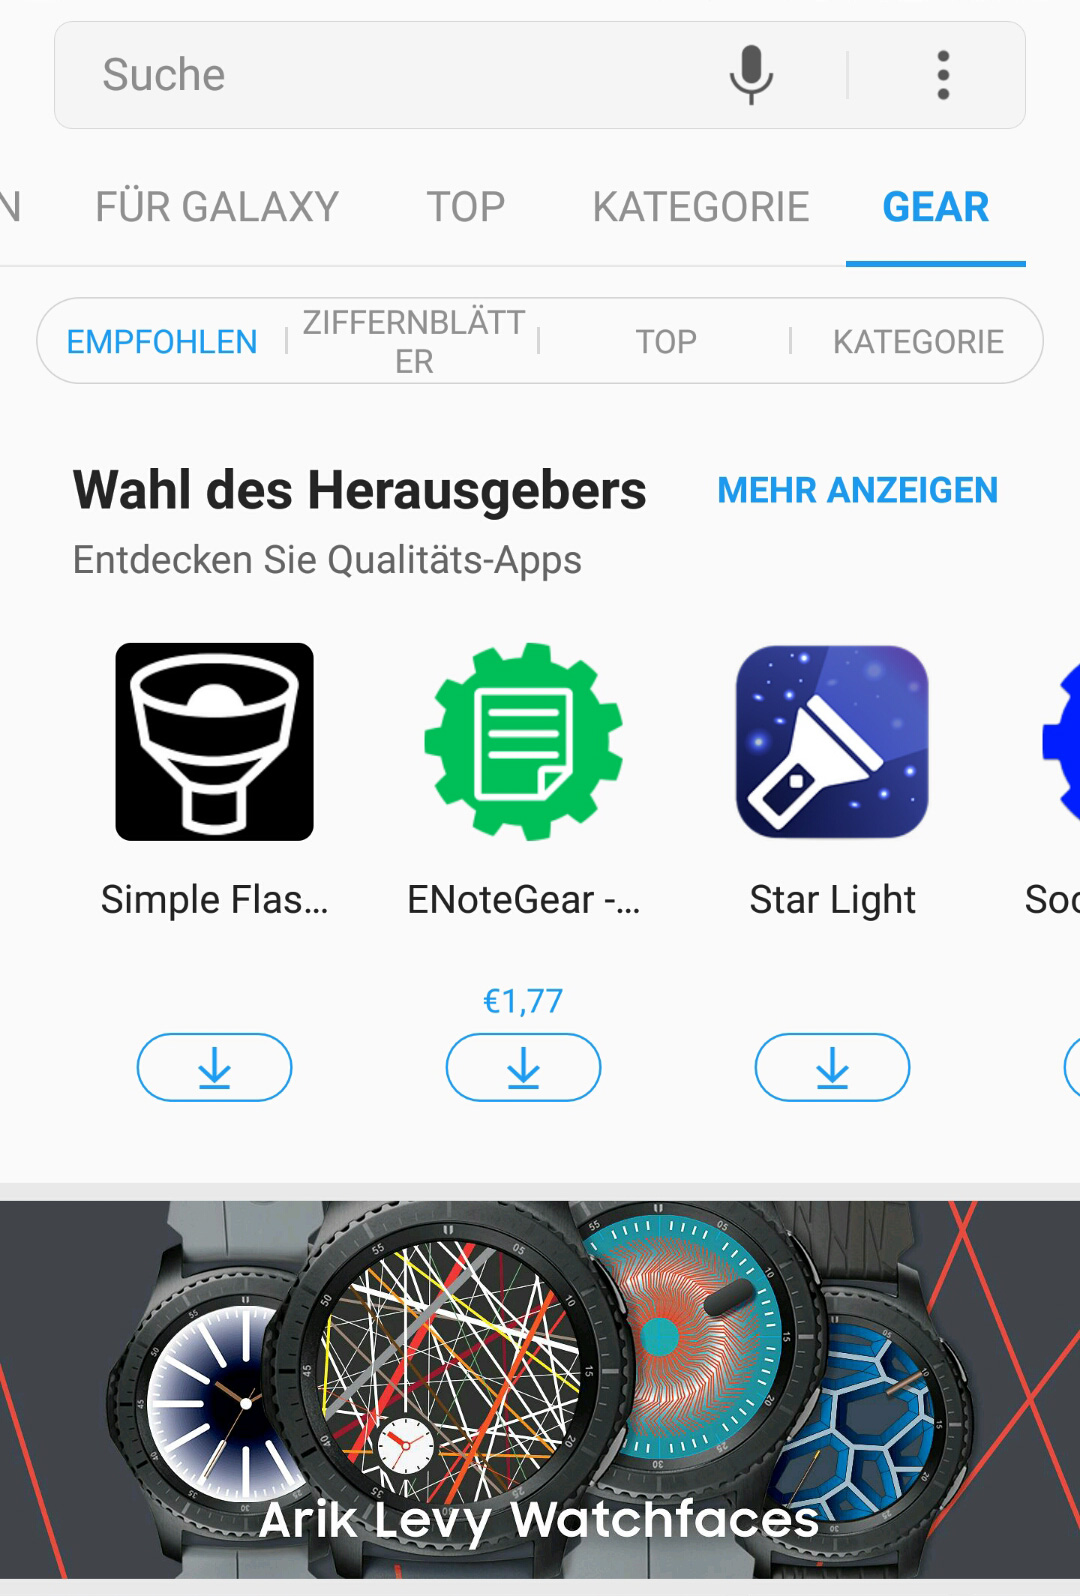 samsung-gear-s3-store-apps_01 Samsung Gear S3 frontier - Die Thronfolgerin im Test Featured Gadgets Hardware Reviews Samsung Smartwatches Technology Testberichte Tizen Wearables